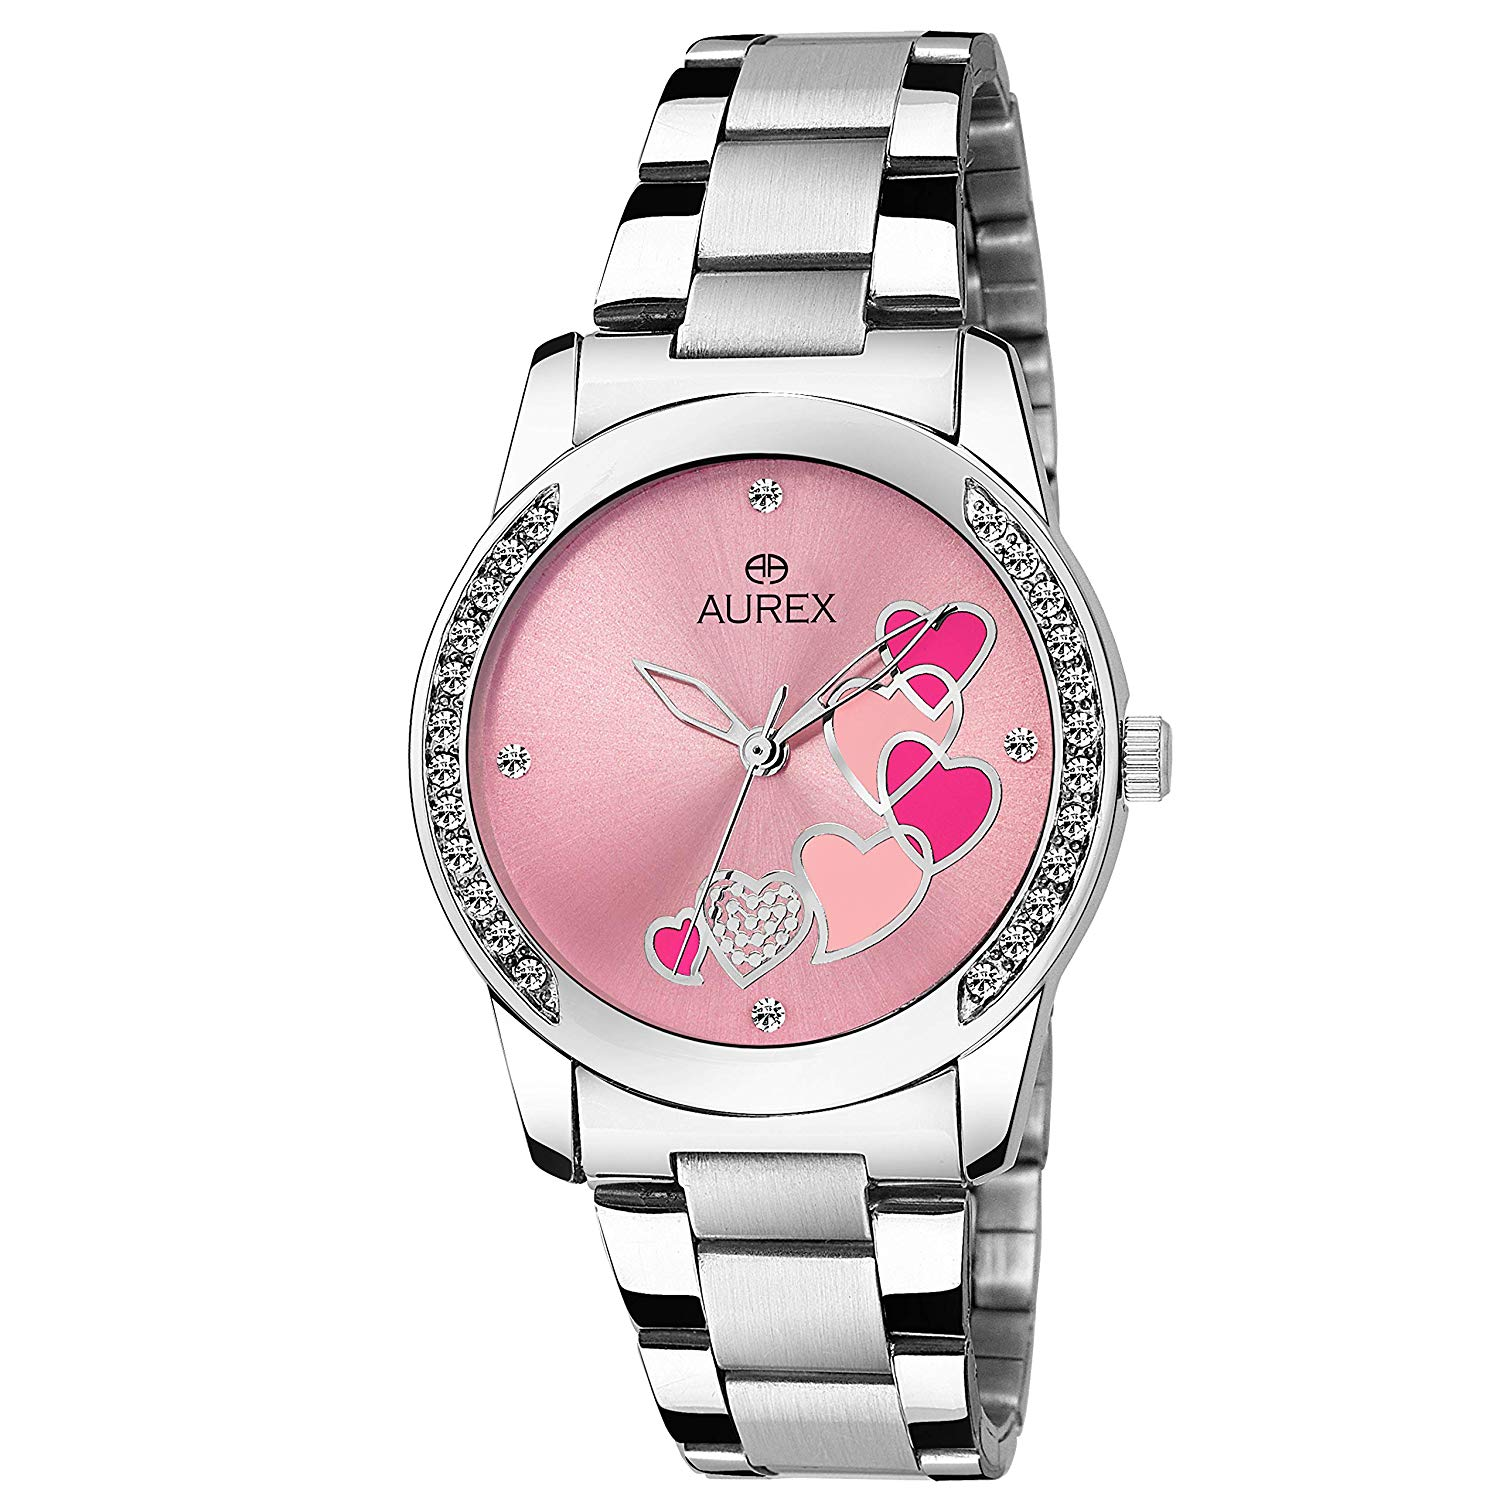 [LD] Aurex Analouge Pink Dial Watch Wa...